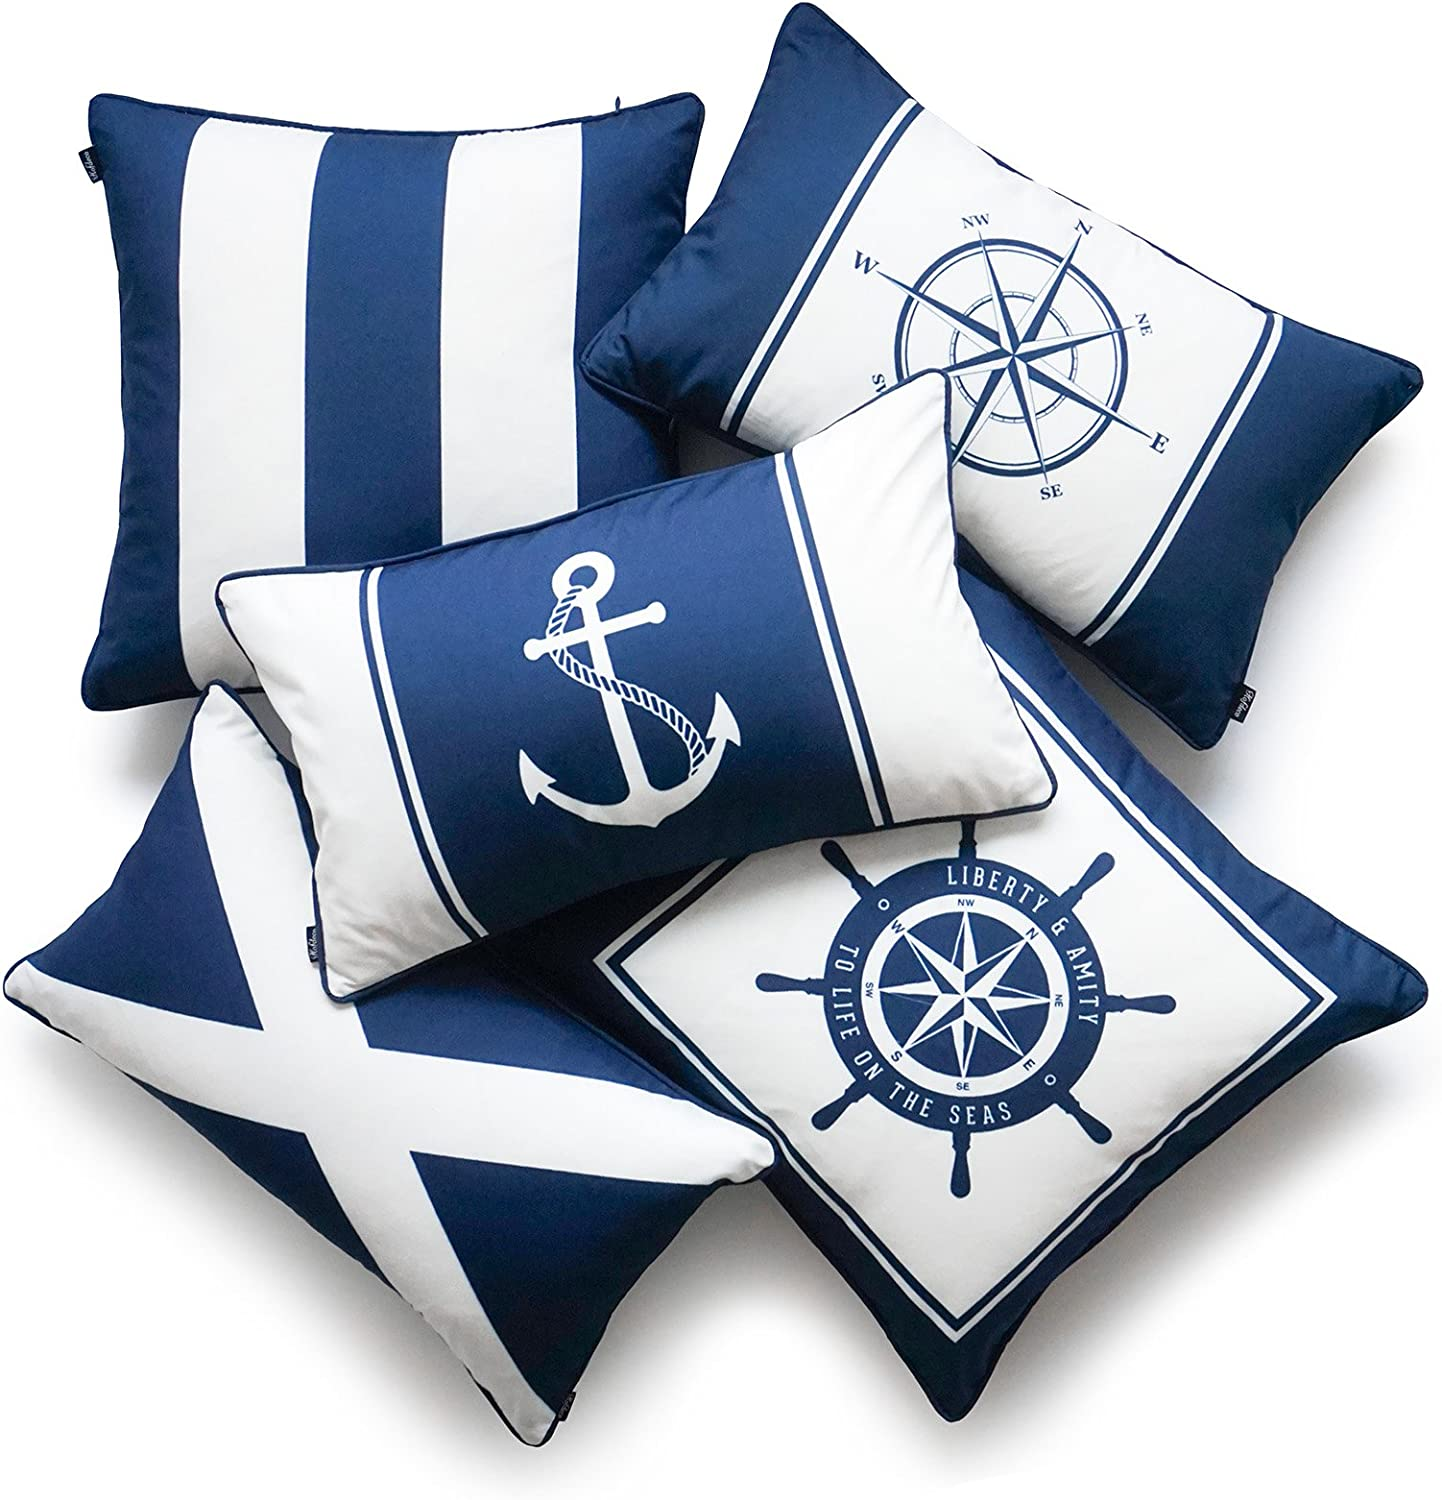 "Hofdeco Nautical Indoor Outdoor Pillow Cover ONLY, Water Resistant for Patio Lounge Sofa, Navy Blue Wheel Flag Anchor Compass Stripes, 18""x18"" 12""x20"", Set of 5"